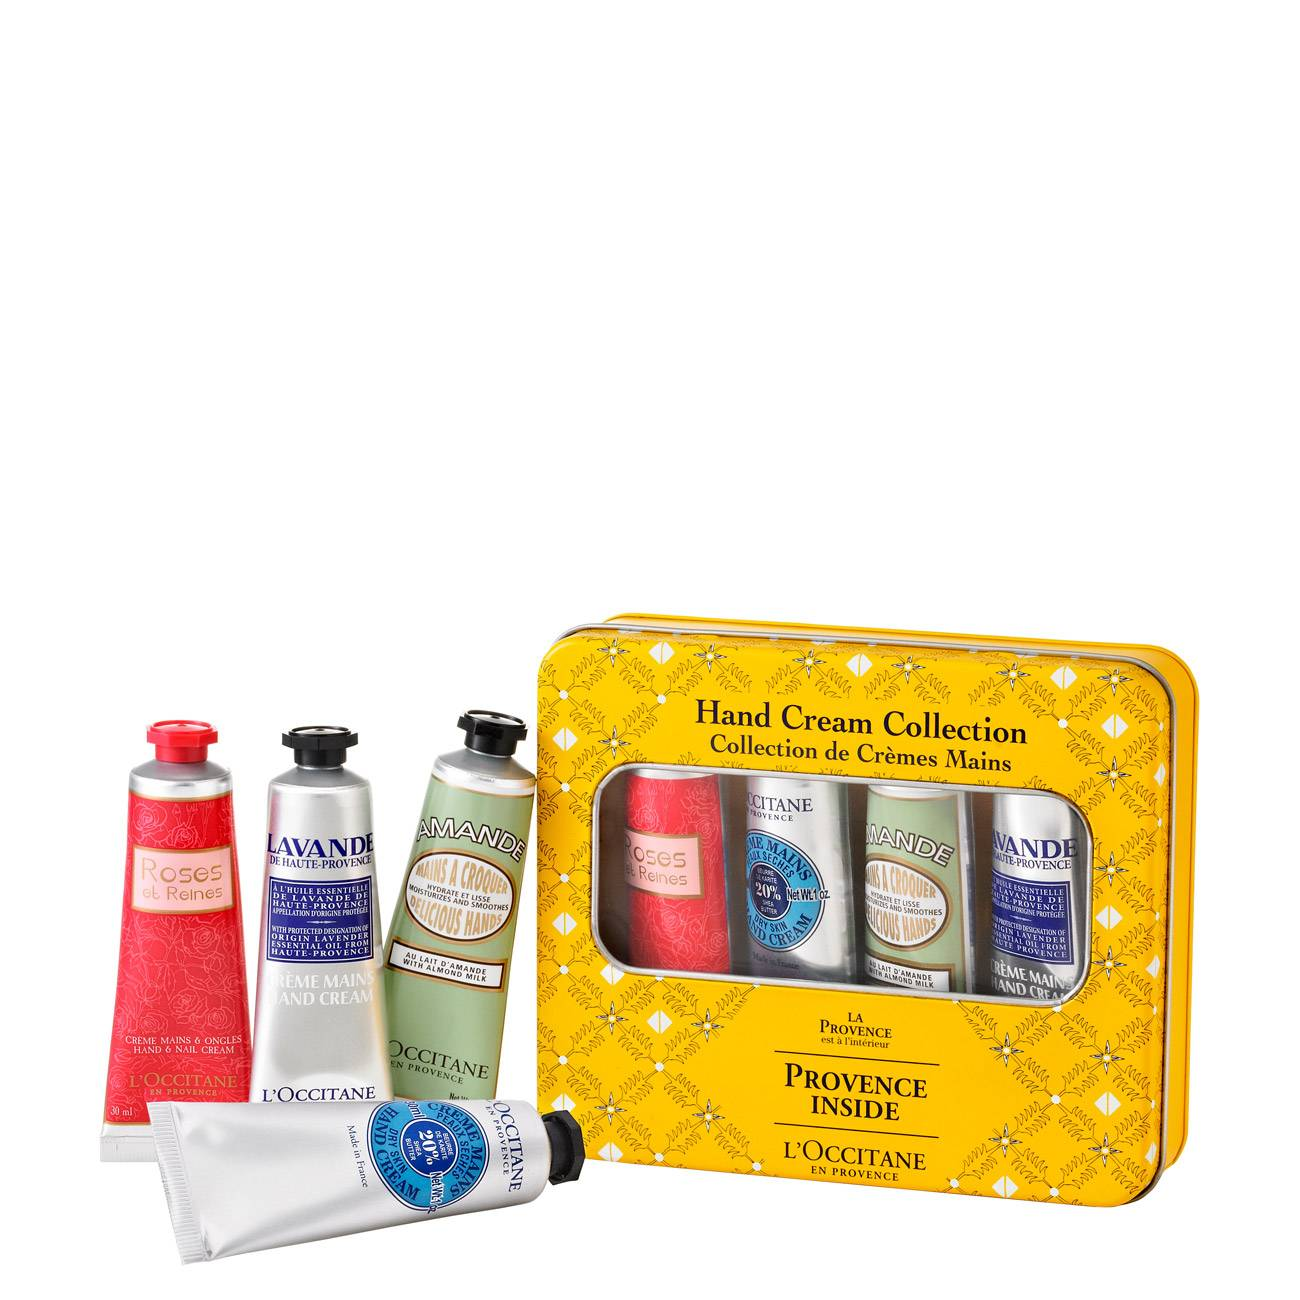 Provencal Yellow Box Xmas Set 120 G L'occitane imagine 2021 bestvalue.eu